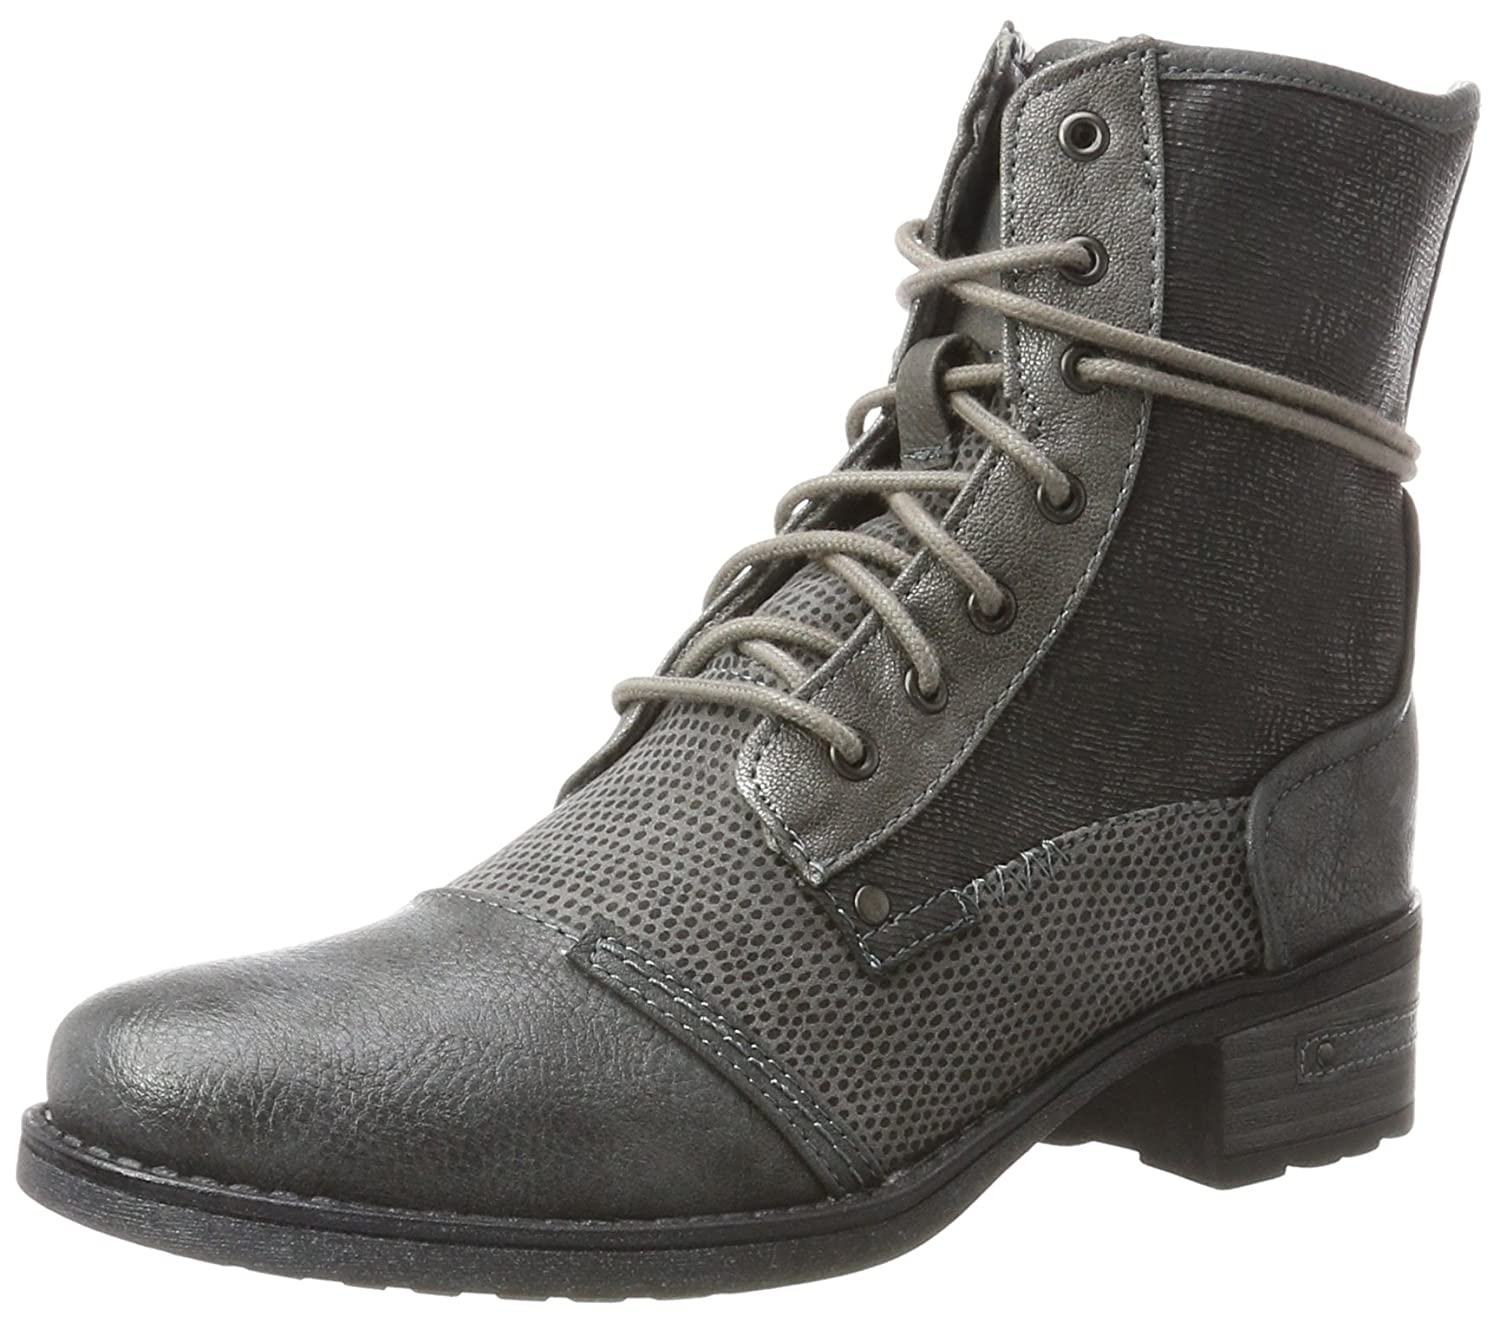 Mustang 1229-507-259, Mustang Bottes 1229-507-259, Femme Gris Gris (Graphit) 48fdaf9 - jessicalock.space